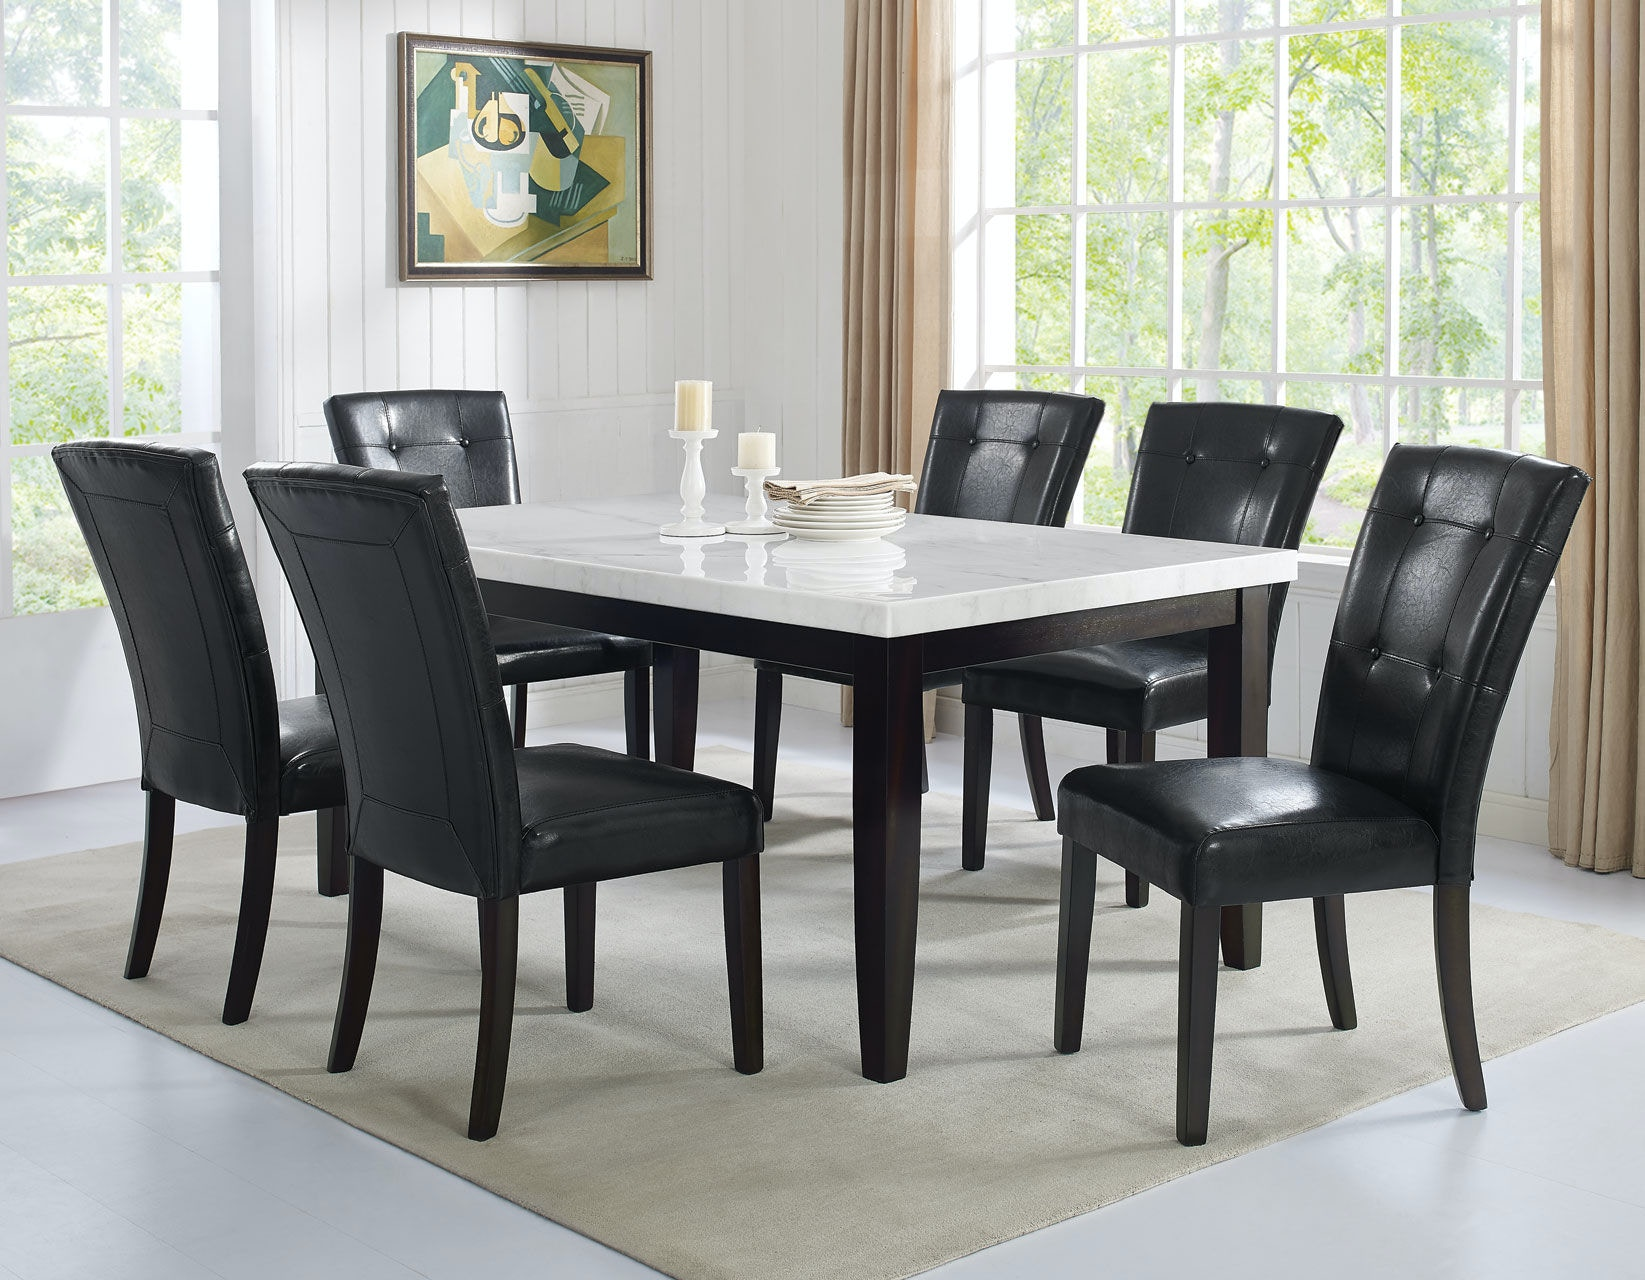 Steve Silver Francis Dining Table Leg FC500TL : francis bay chairs - Cheerinfomania.Com